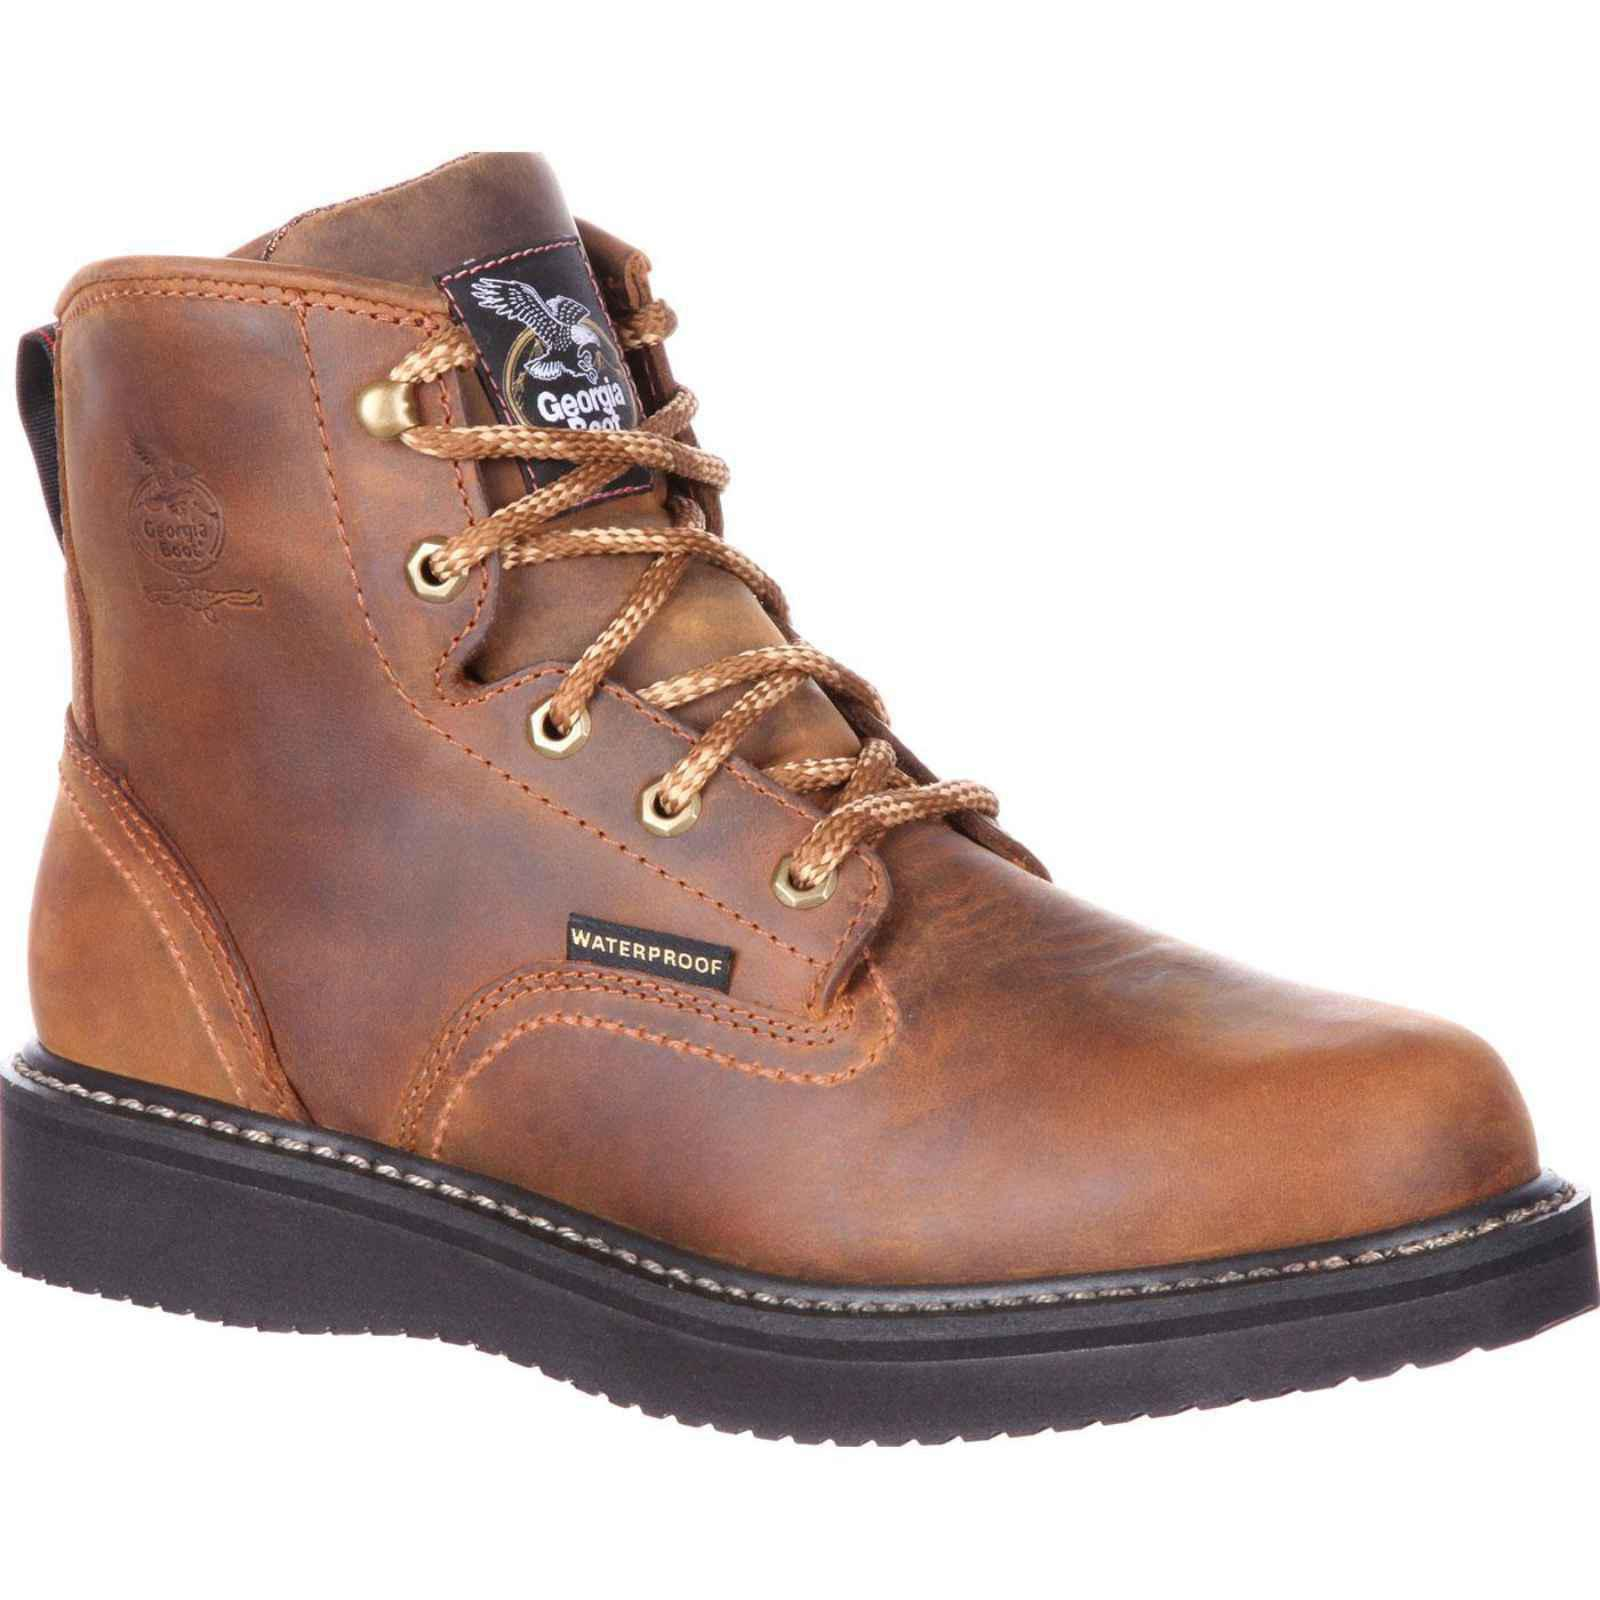 Men's Georgia Boot GB00124 Waterproof Wedge Work Boot by Georgia Boot